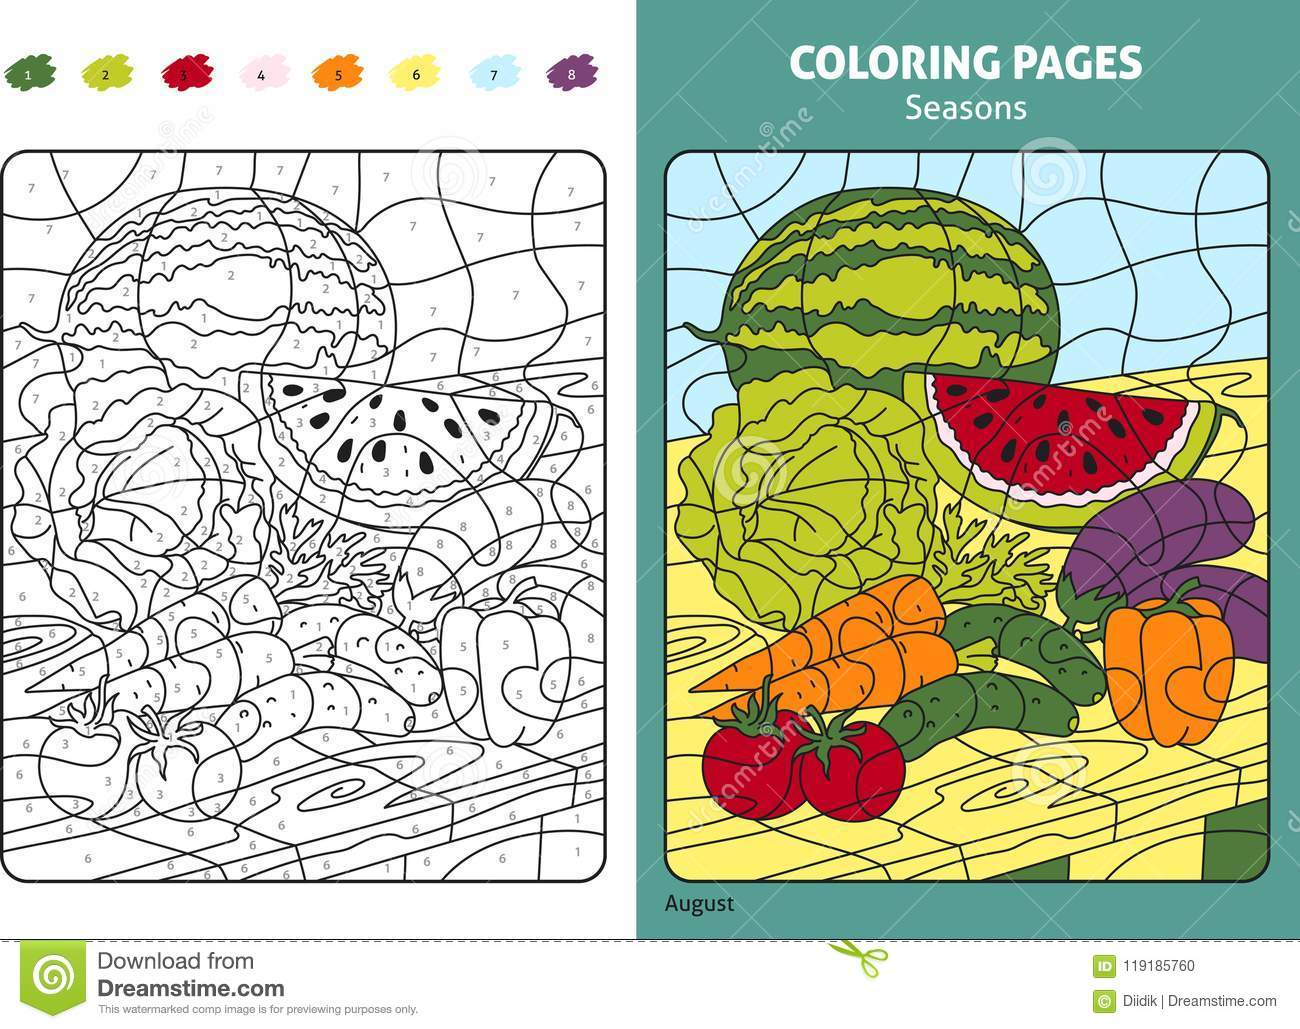 picture about Seasons Printable identified as Seasons Coloring Web page For Children, August Thirty day period Inventory Vector